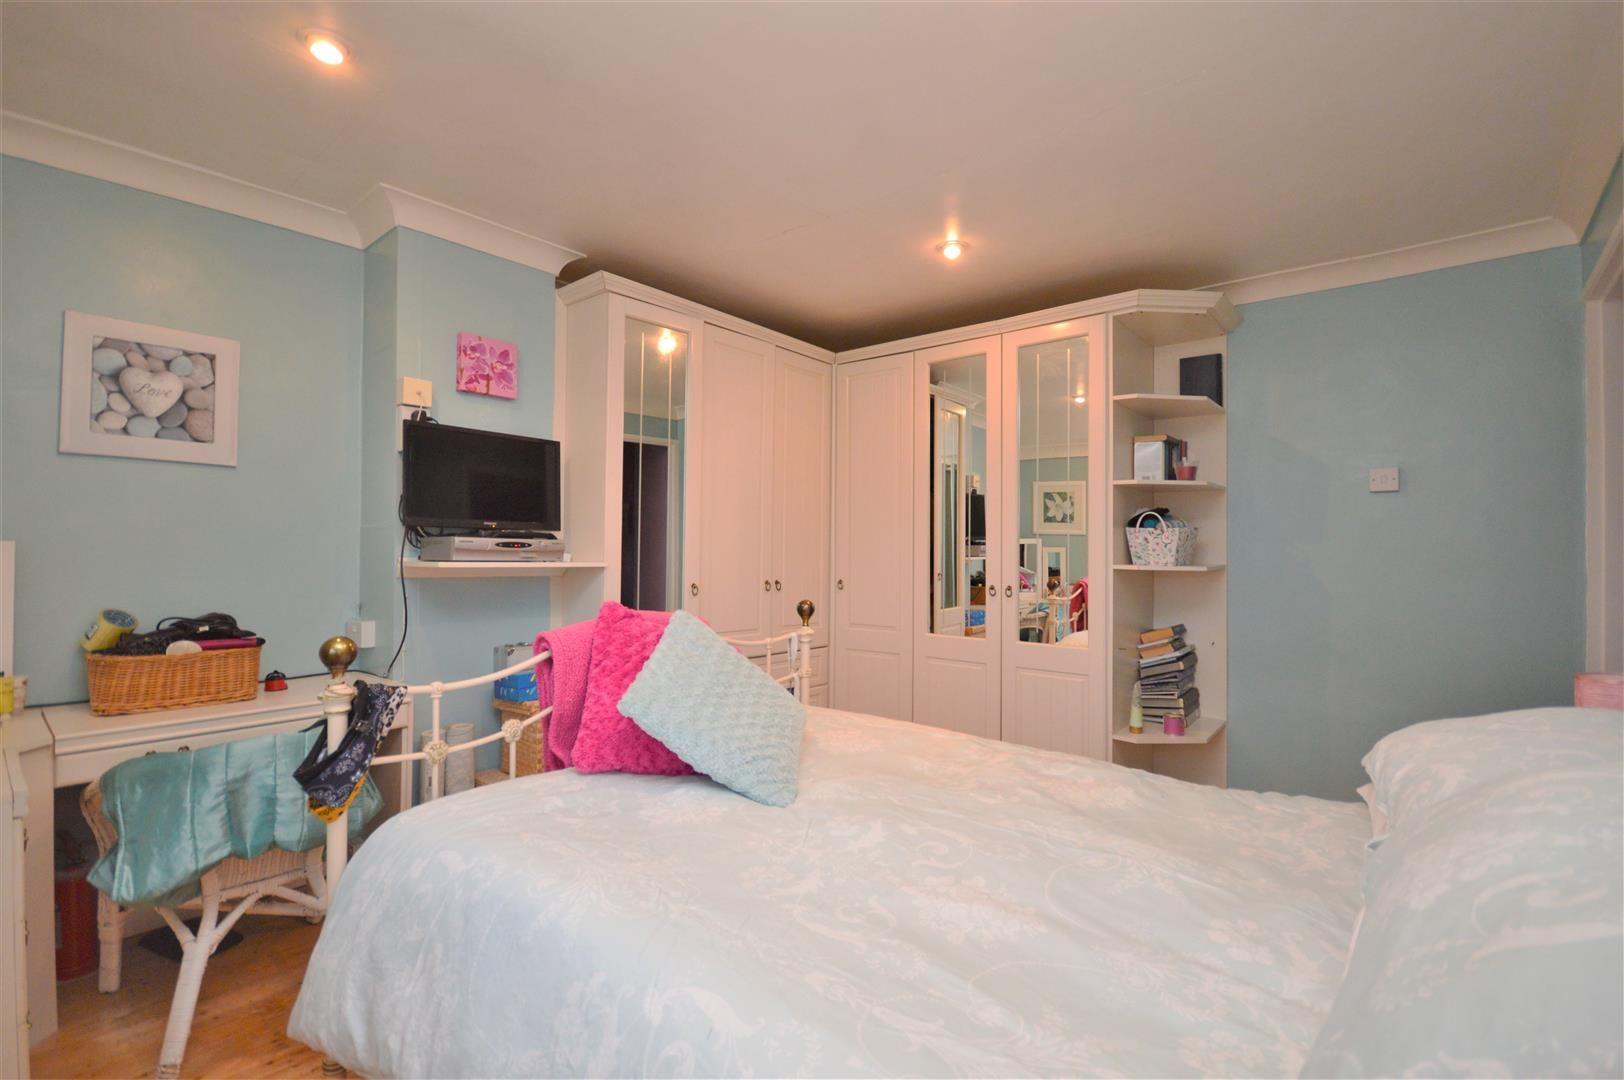 3 bed semi-detached for sale in Much Birch  - Property Image 8